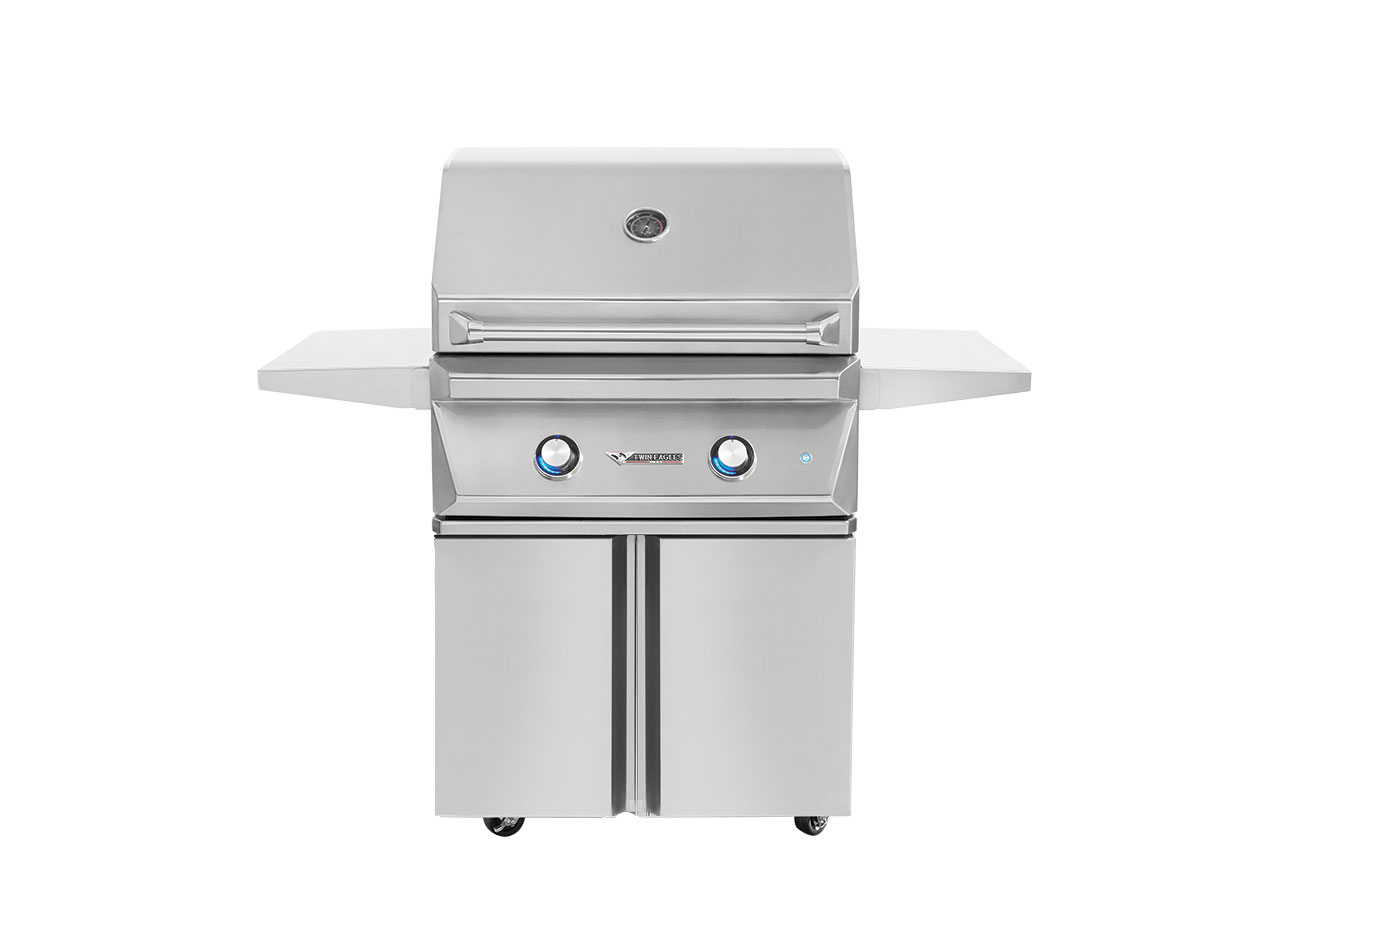 Twin Eagles 30 Inch Propane Grill with Rotisserie and Sear Zone on Cart